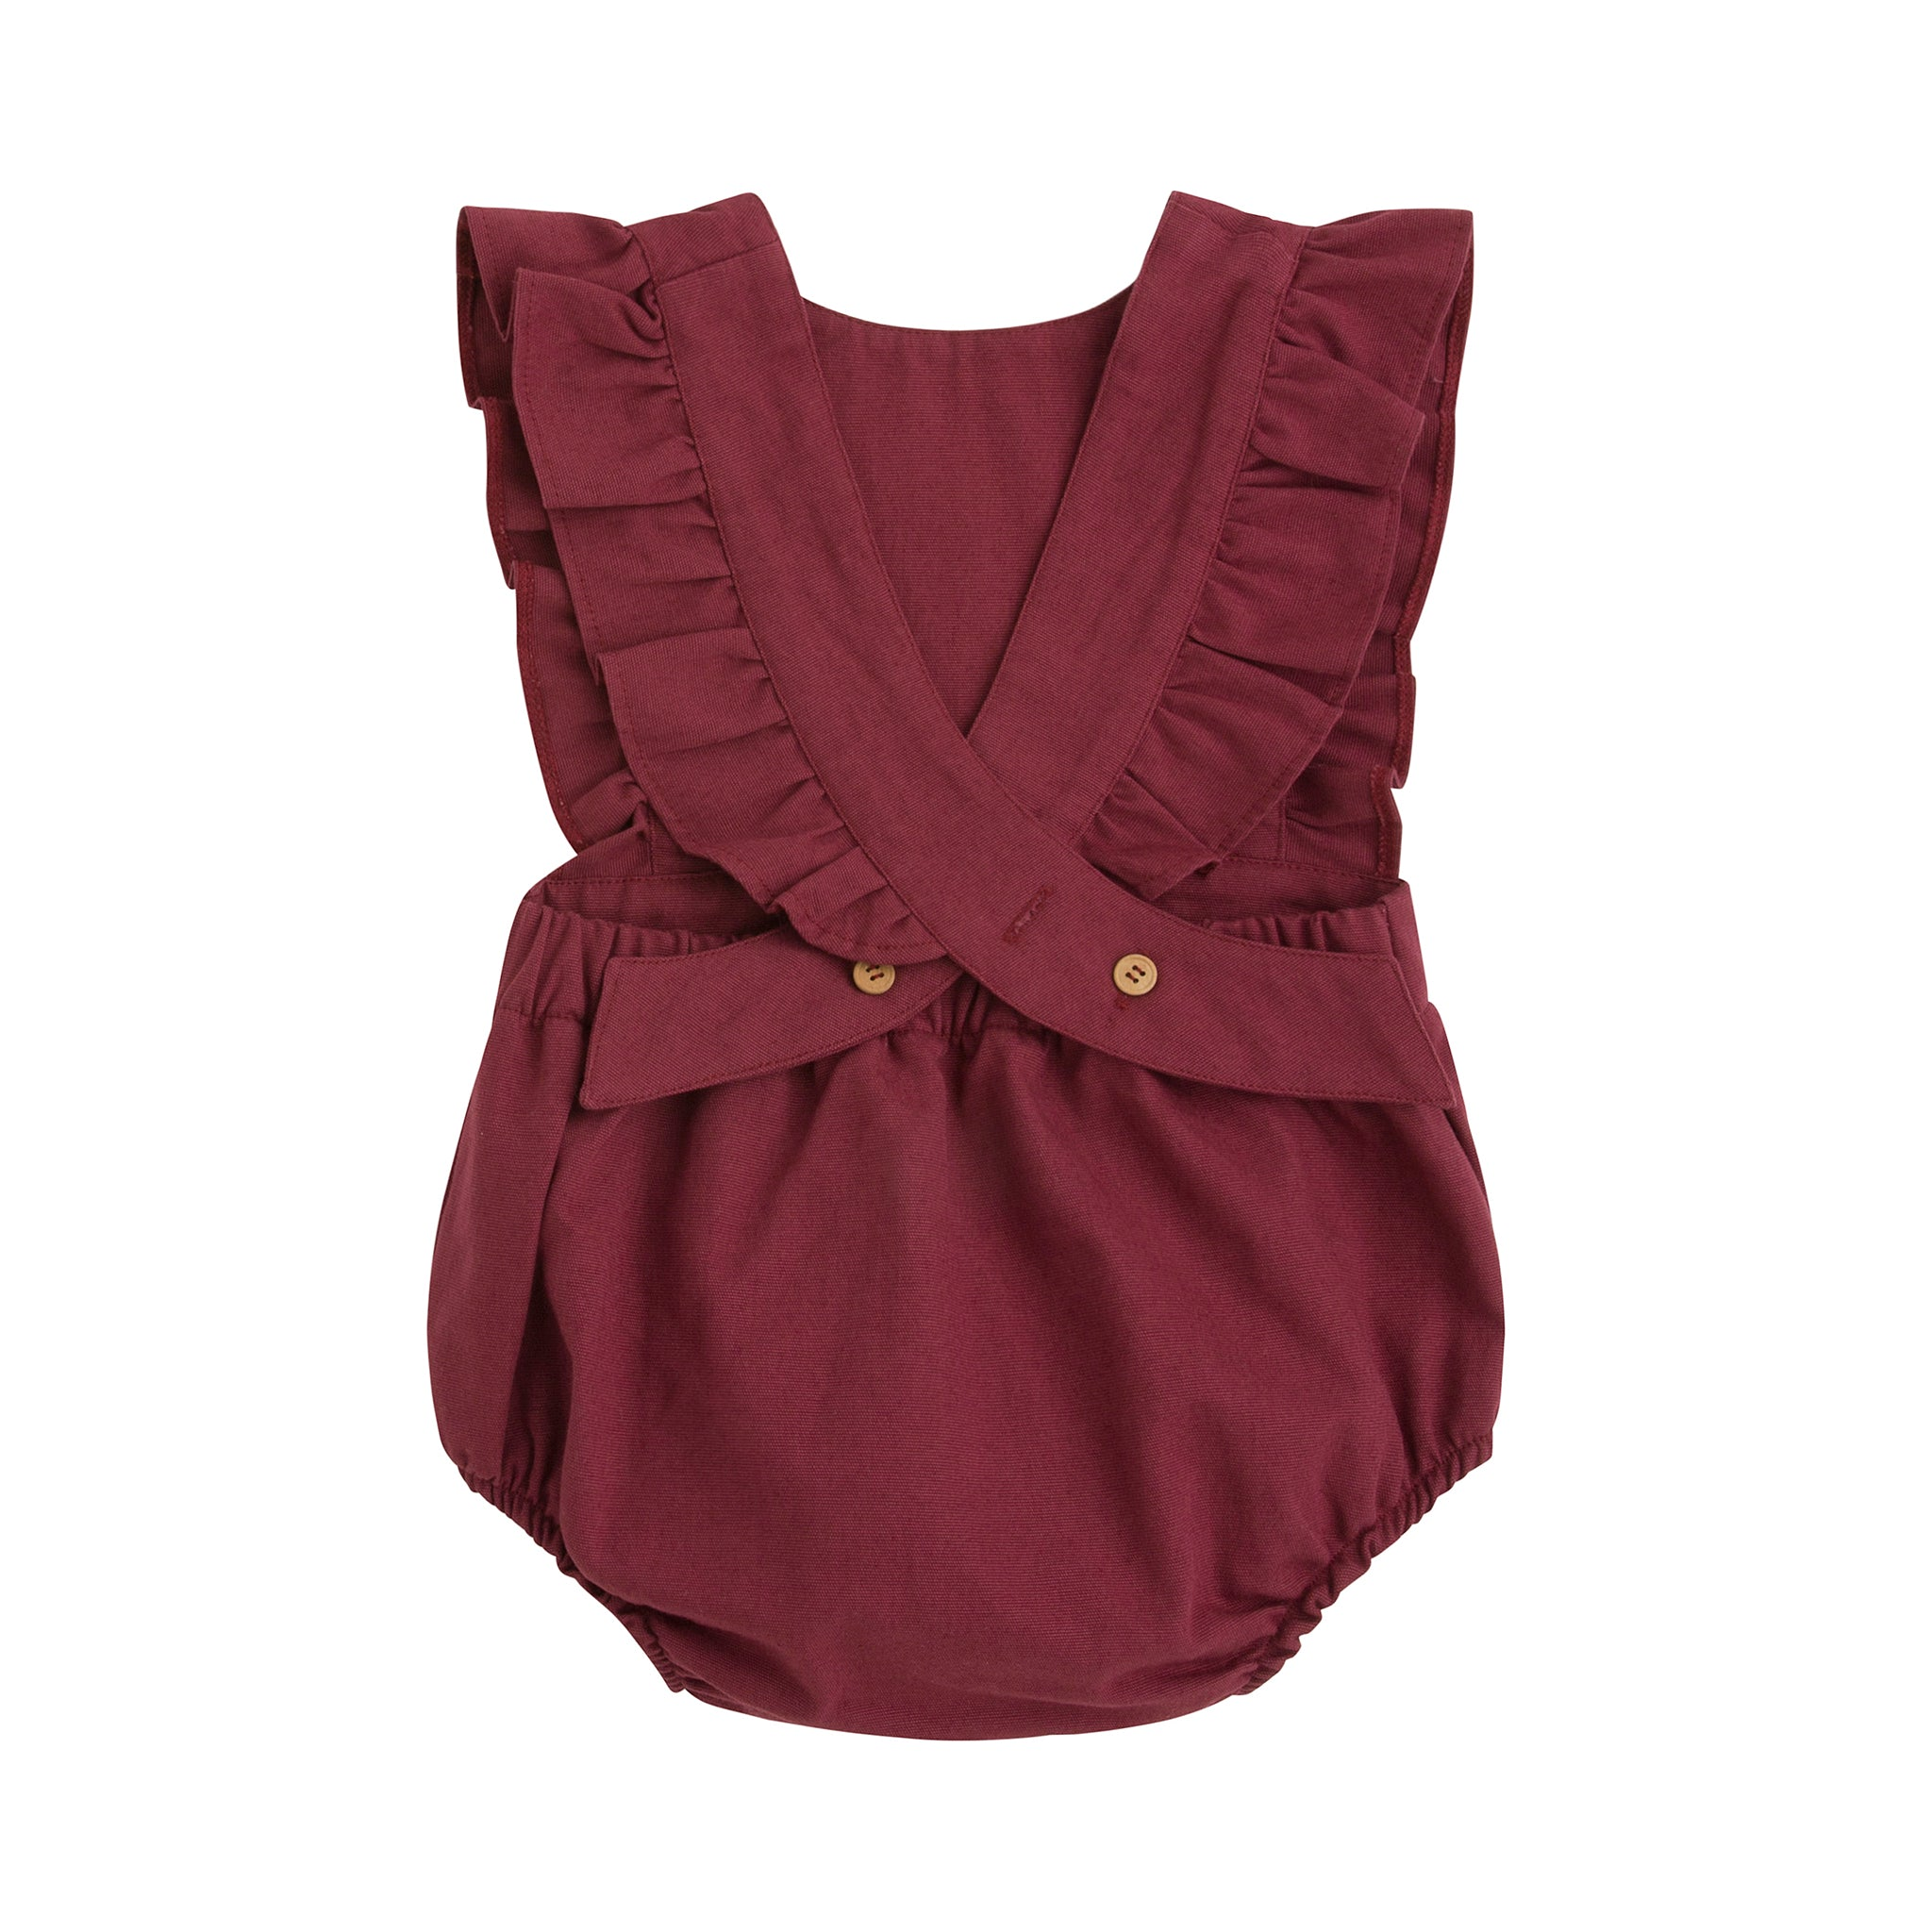 baby girl burgundy canvas romper with ruffle trim and wooden button closure in back